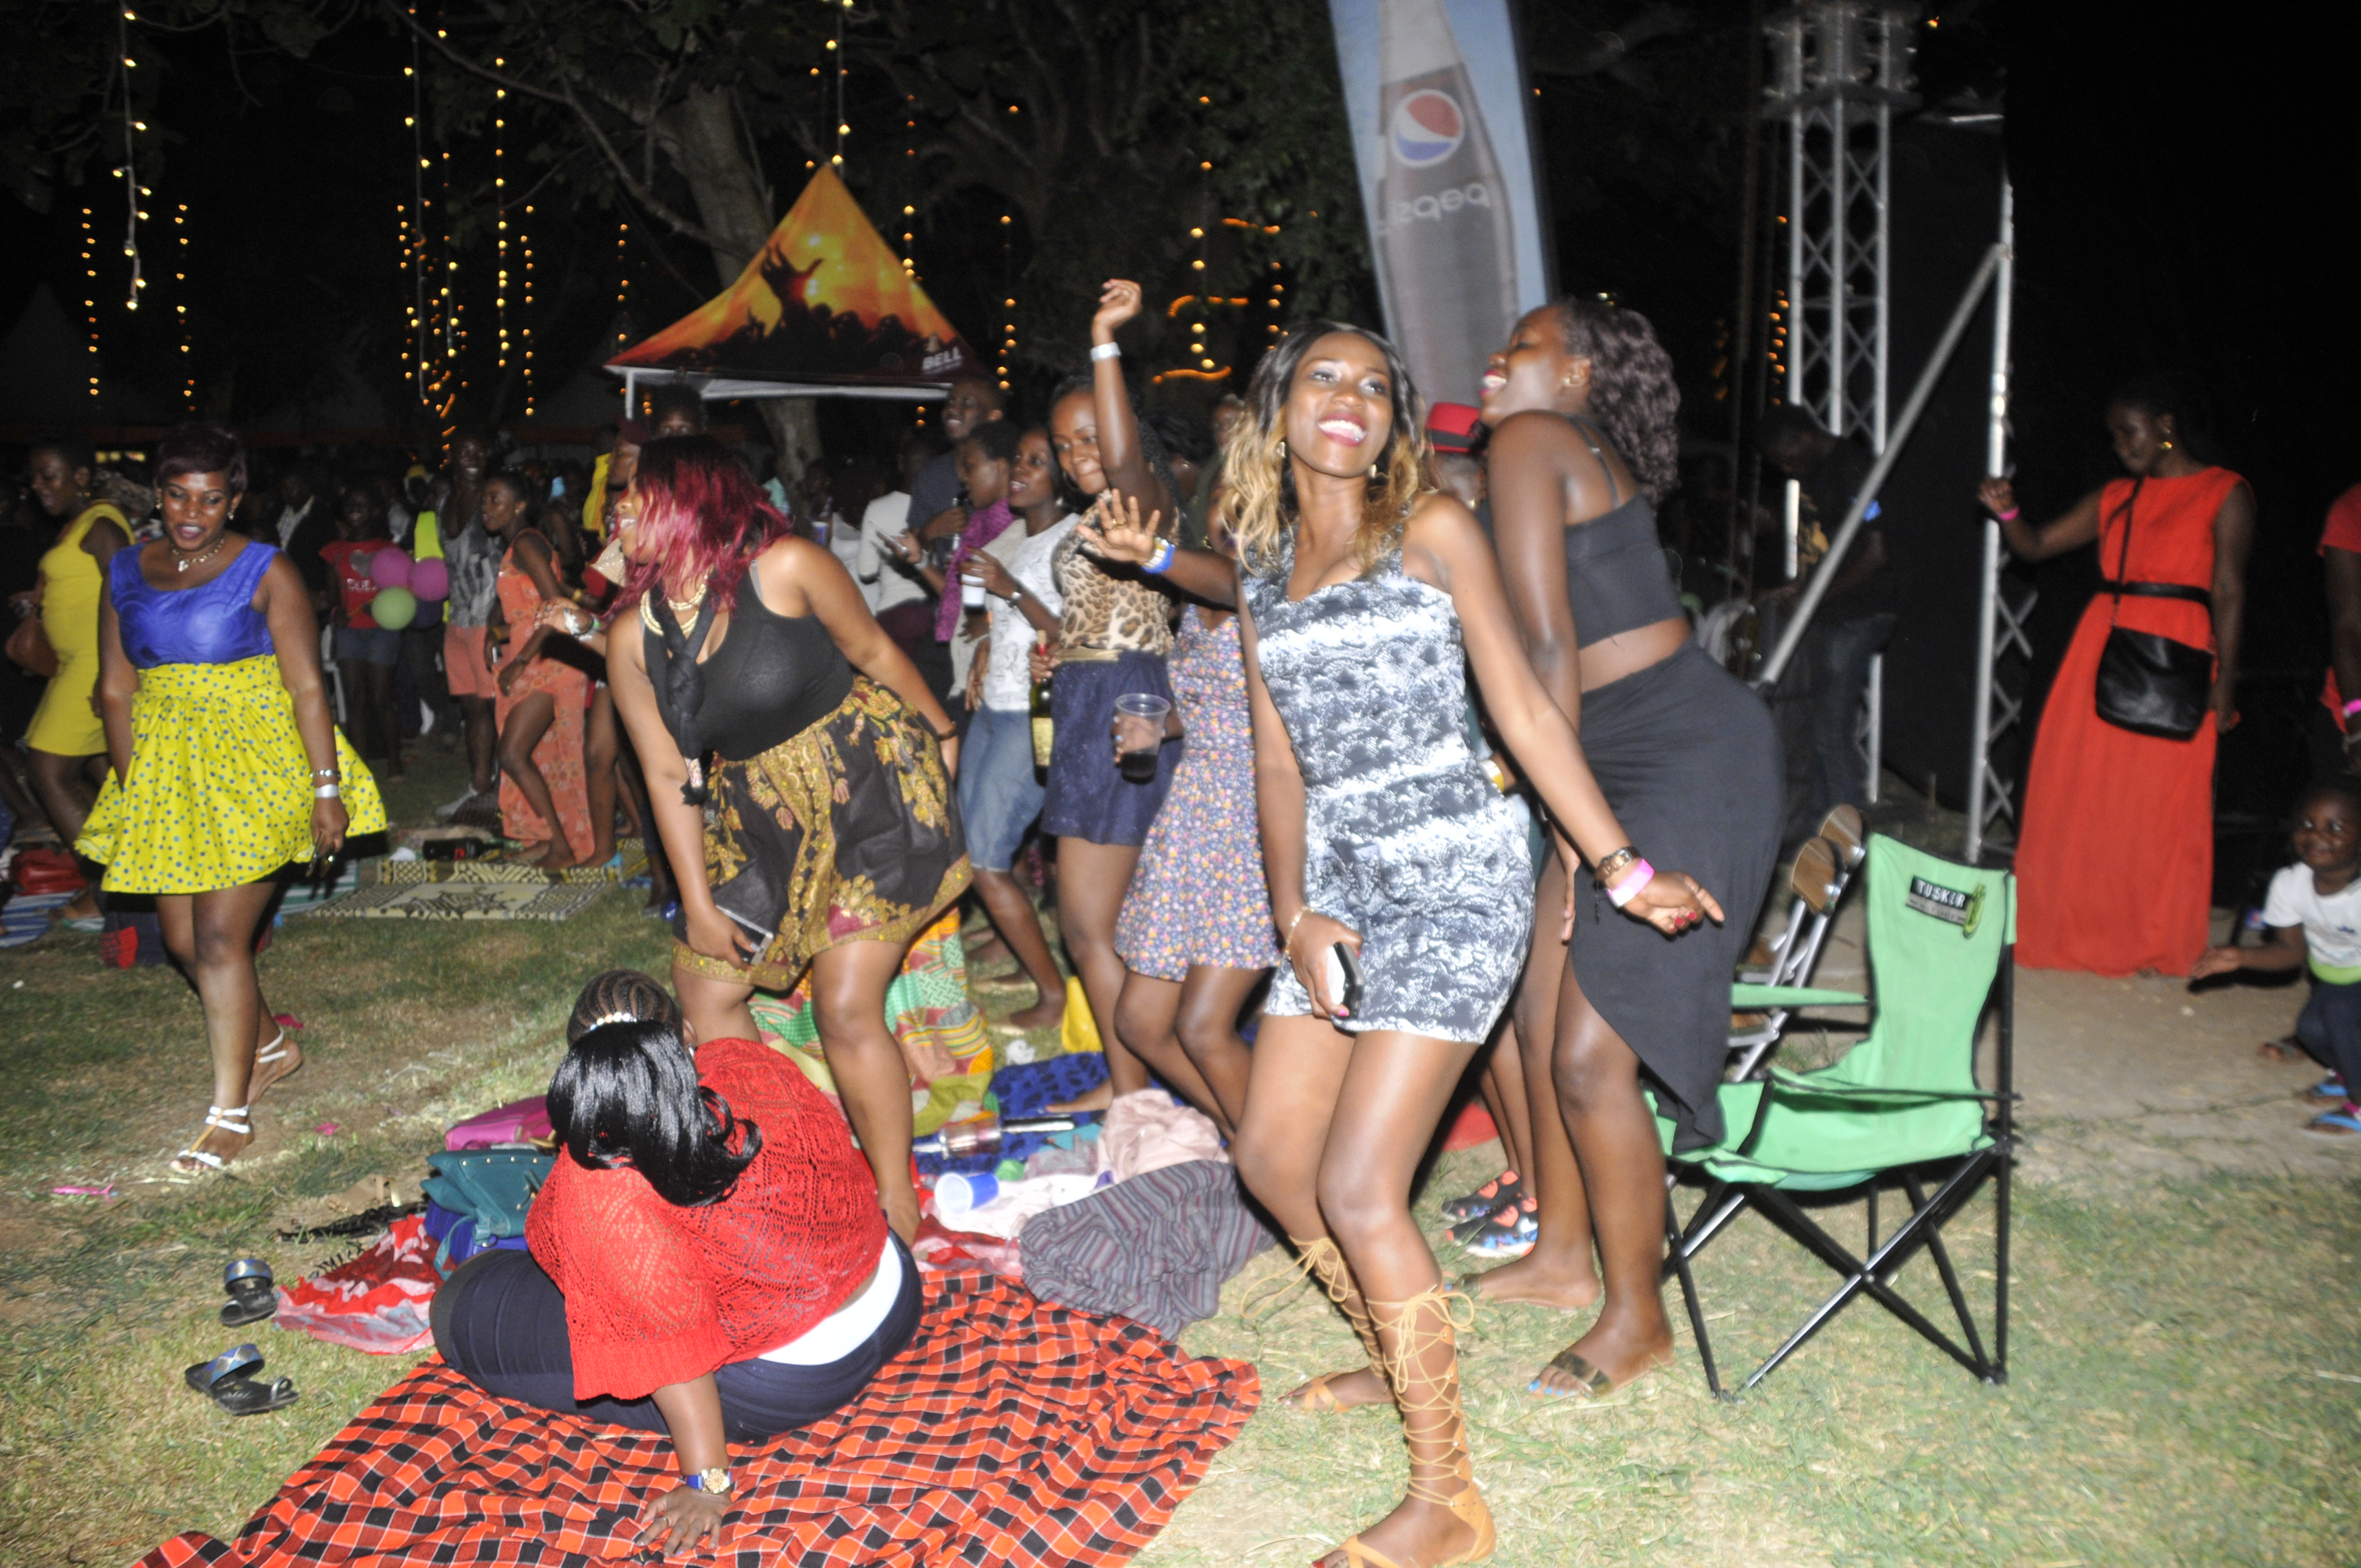 revelers-danced-along-to-their-favorite-songs-performed-at-the-last-roast-rhyme-edition